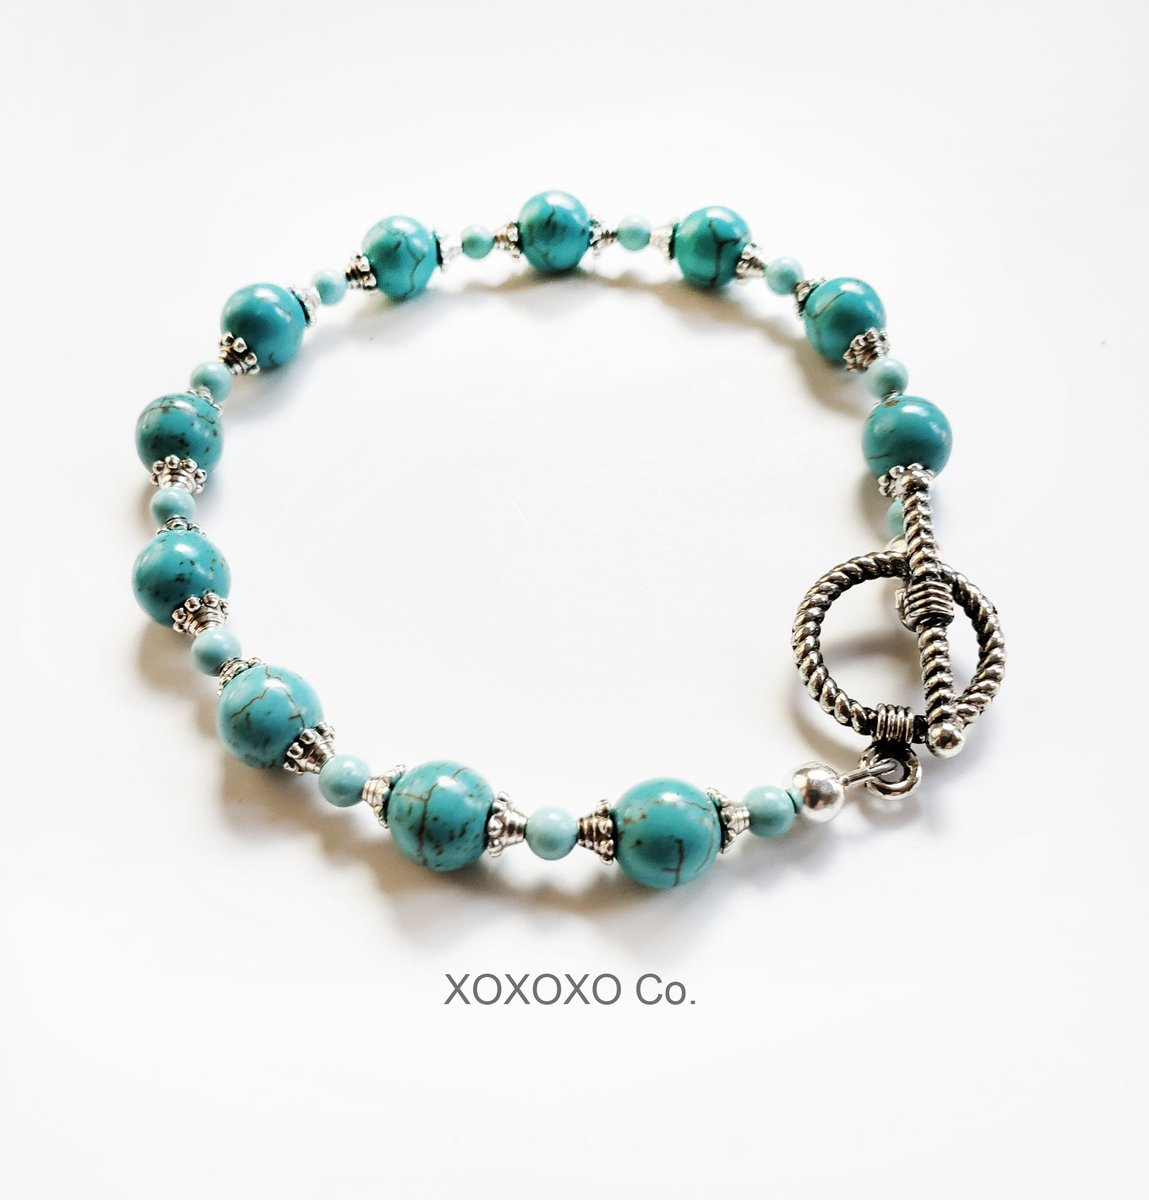 Dainty Turquoise Bracelet with Silver Spacer Beads Southwest Jewelry Design https://t.co/4euOBvBoA8 #jewelryblogger #giftidea #handmadejewelry #fashion #handmade #giftideas #style #Etsy https://t.co/u9NM69KmlU